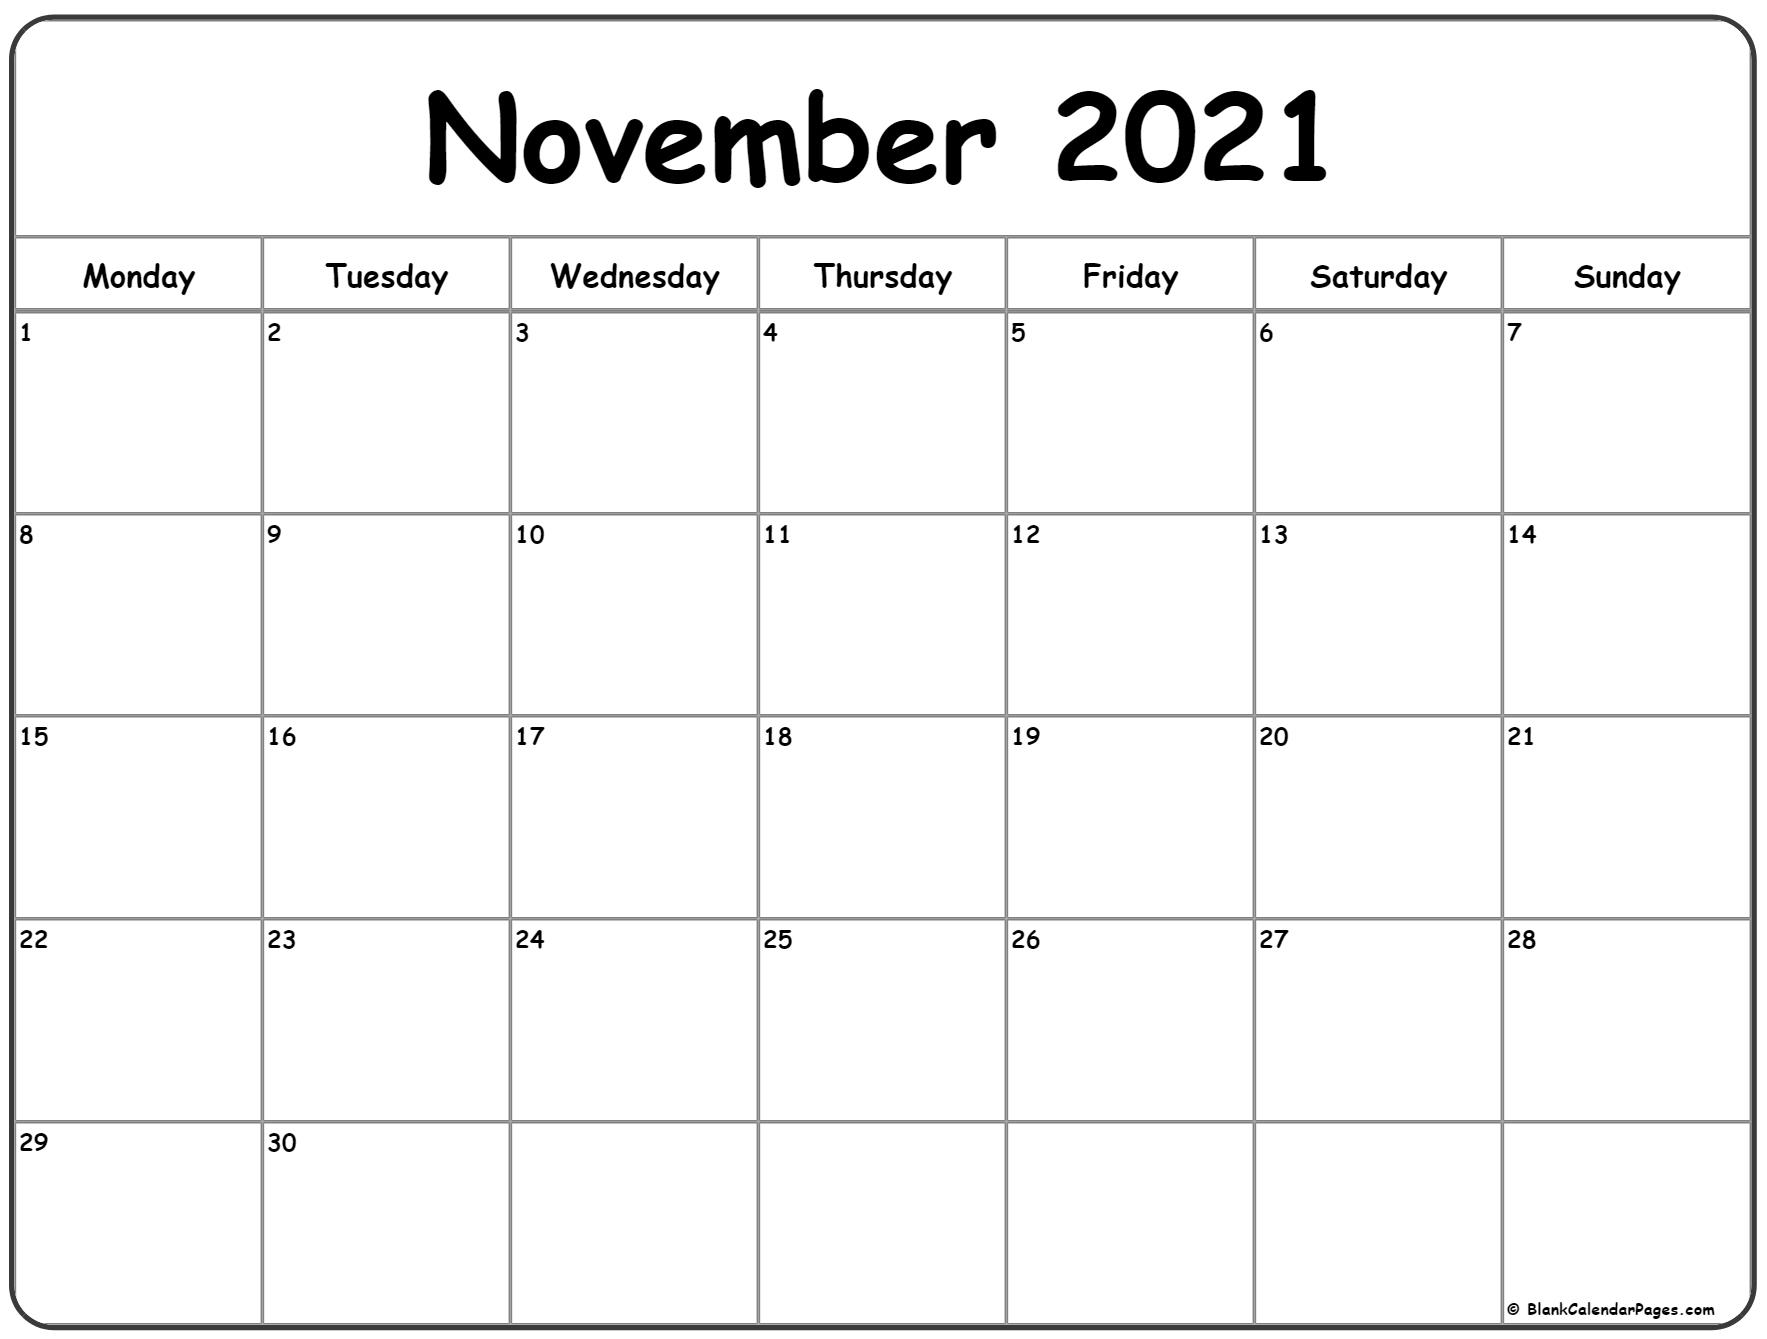 November 2021 Monday Calendar | Monday to Sunday